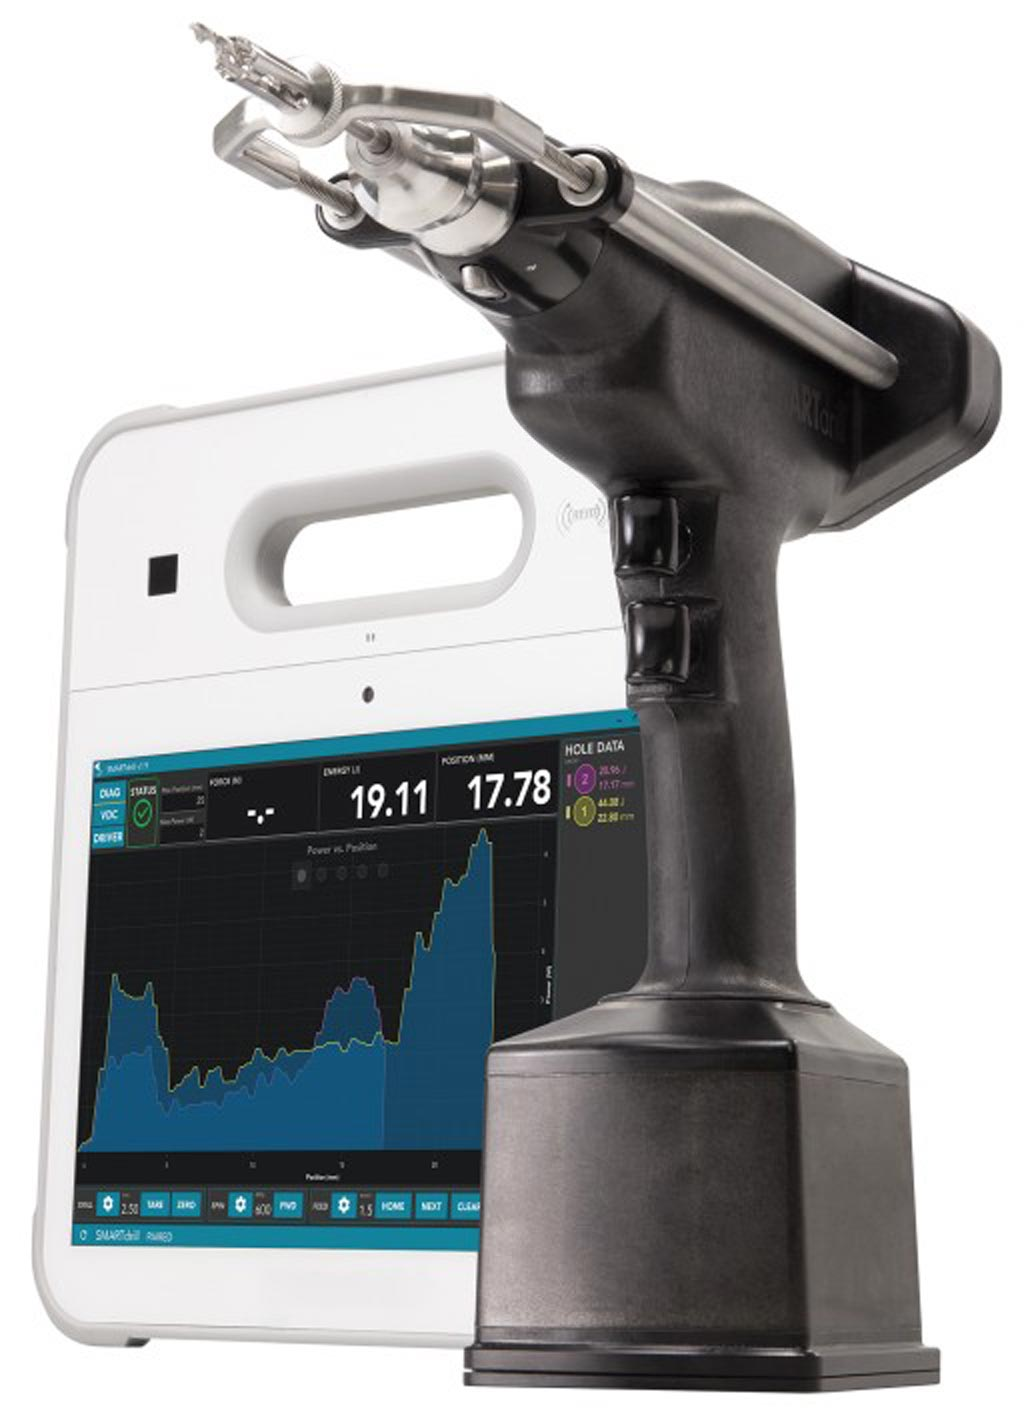 Image: The SMARTdrill 6.0 and its GUI (Photo courtesy of Smart Medical Devices).